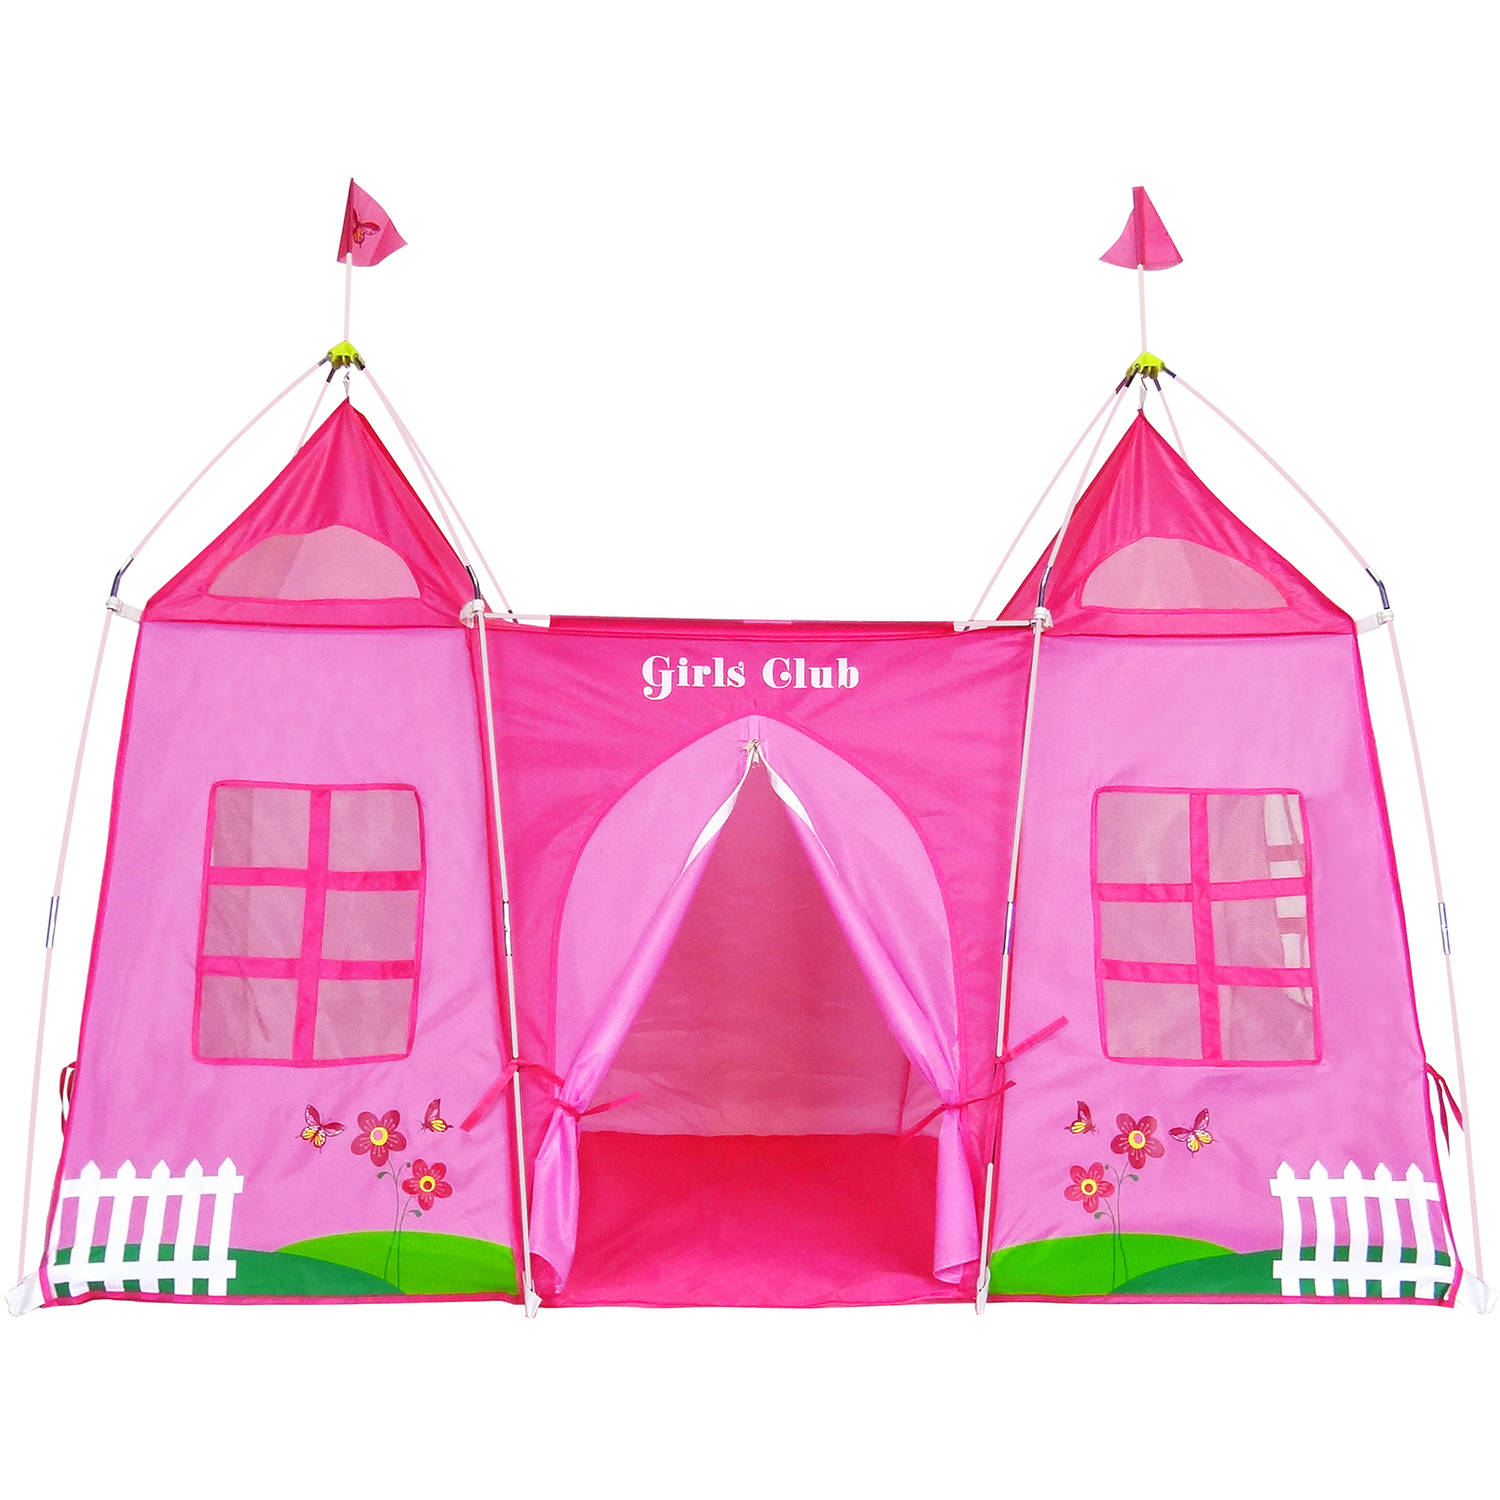 GigaTent Girls Club Pink Play Tent by GigaTent